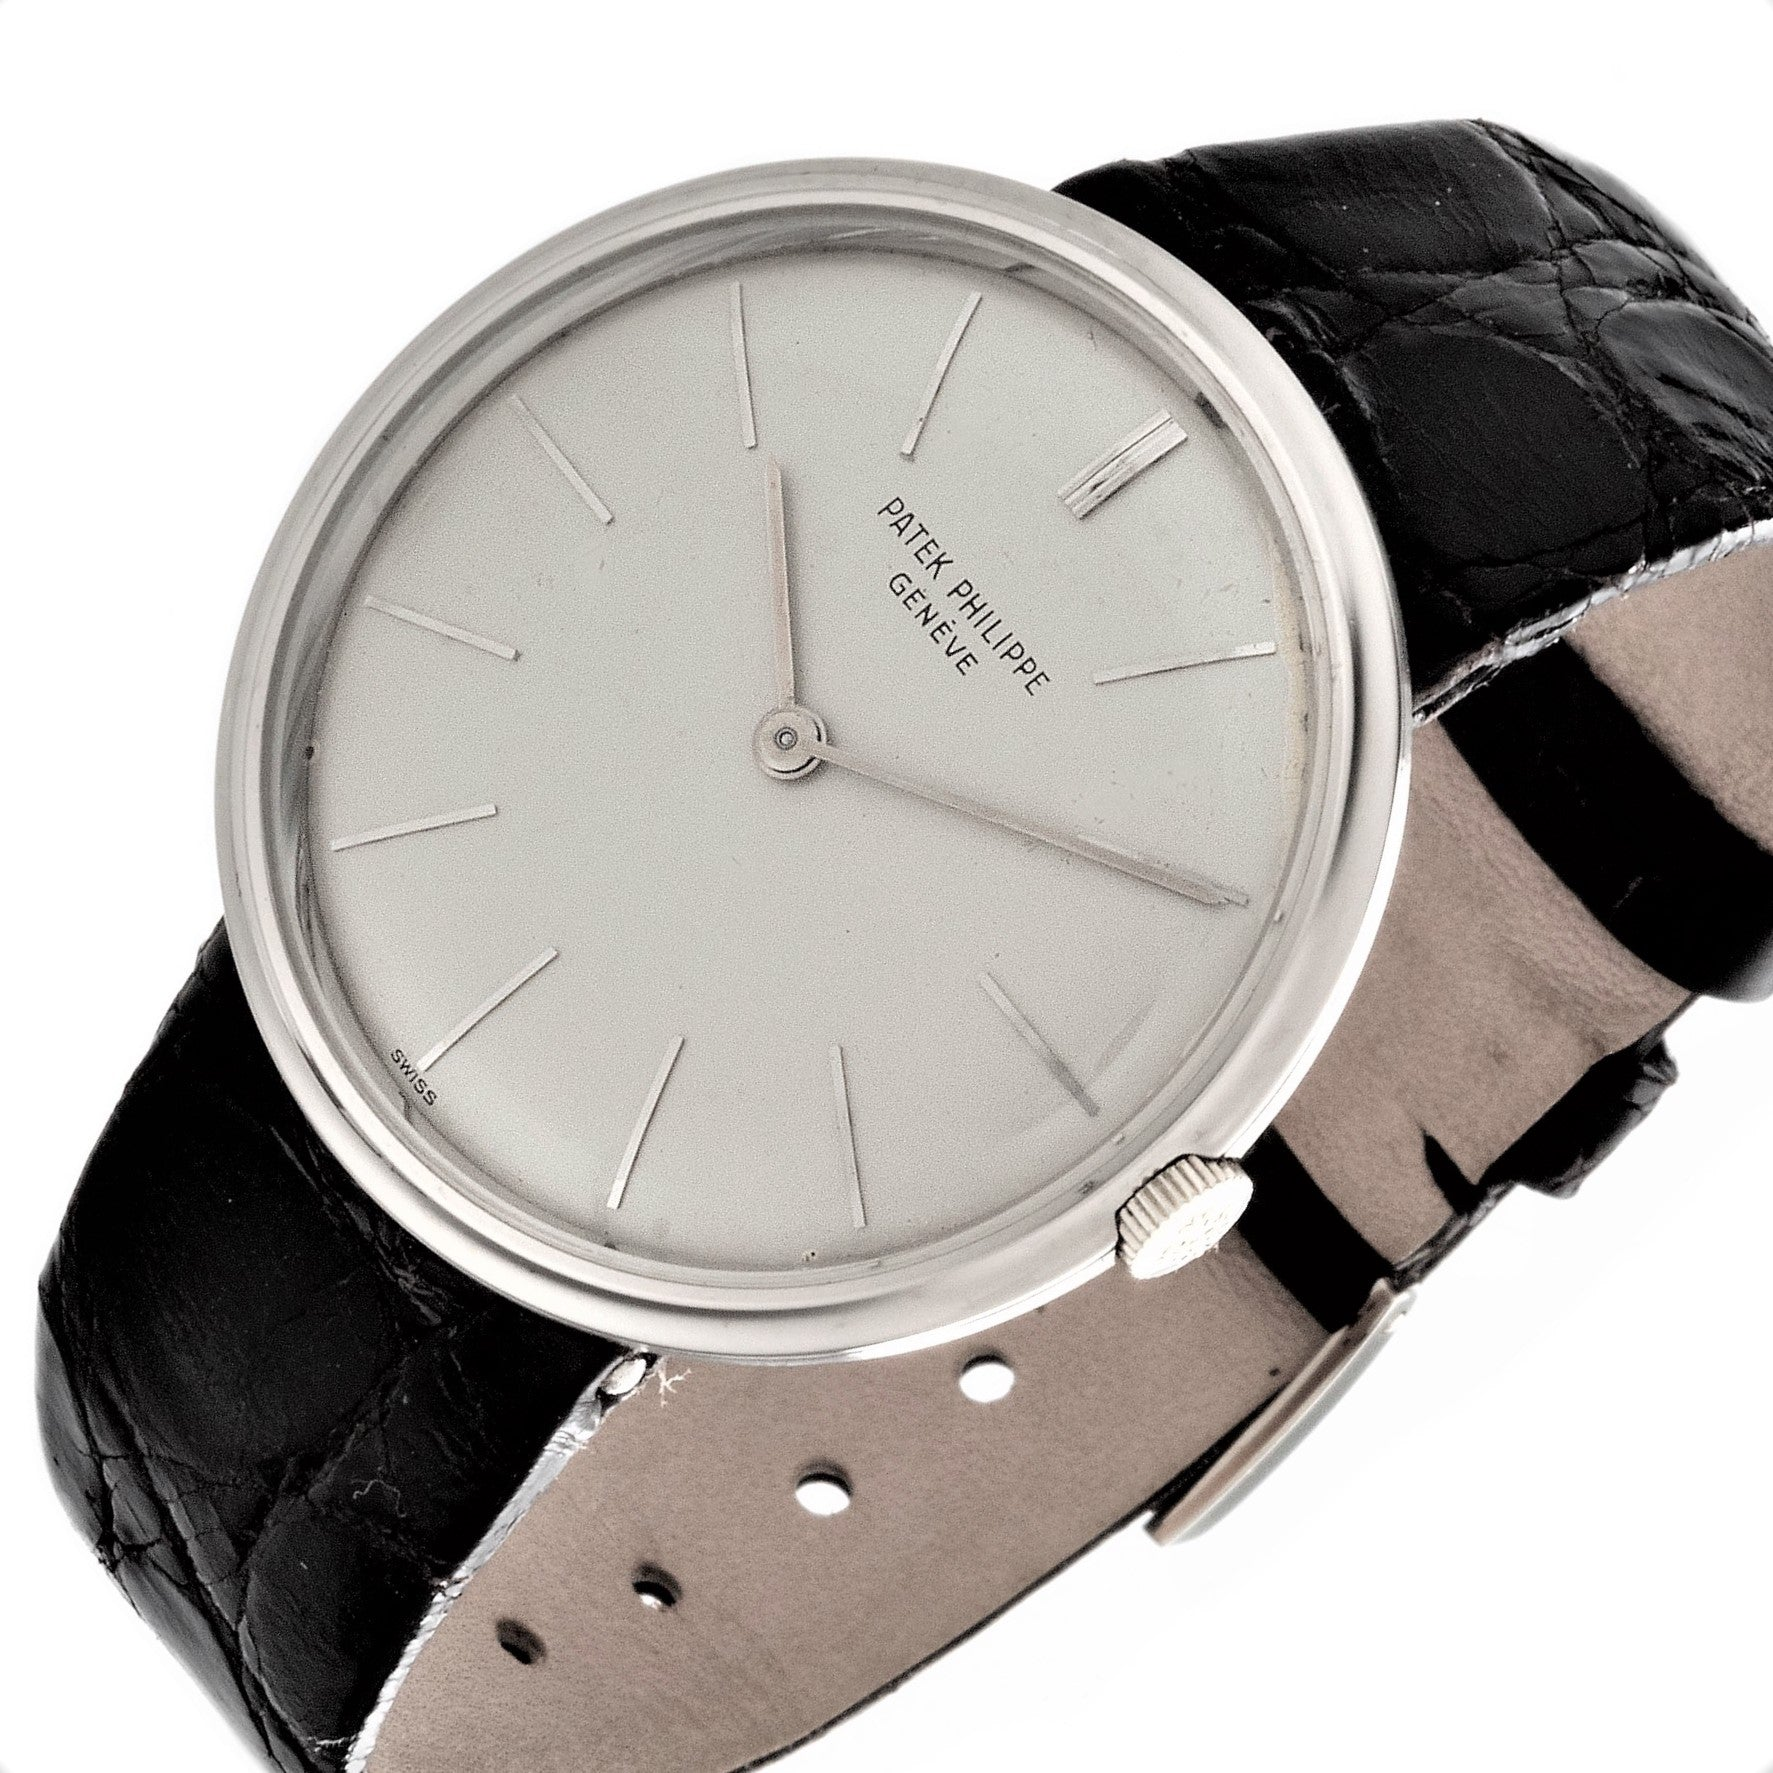 Patek Philippe 2591G White Gold Calatrava Watch.  Circa 1965